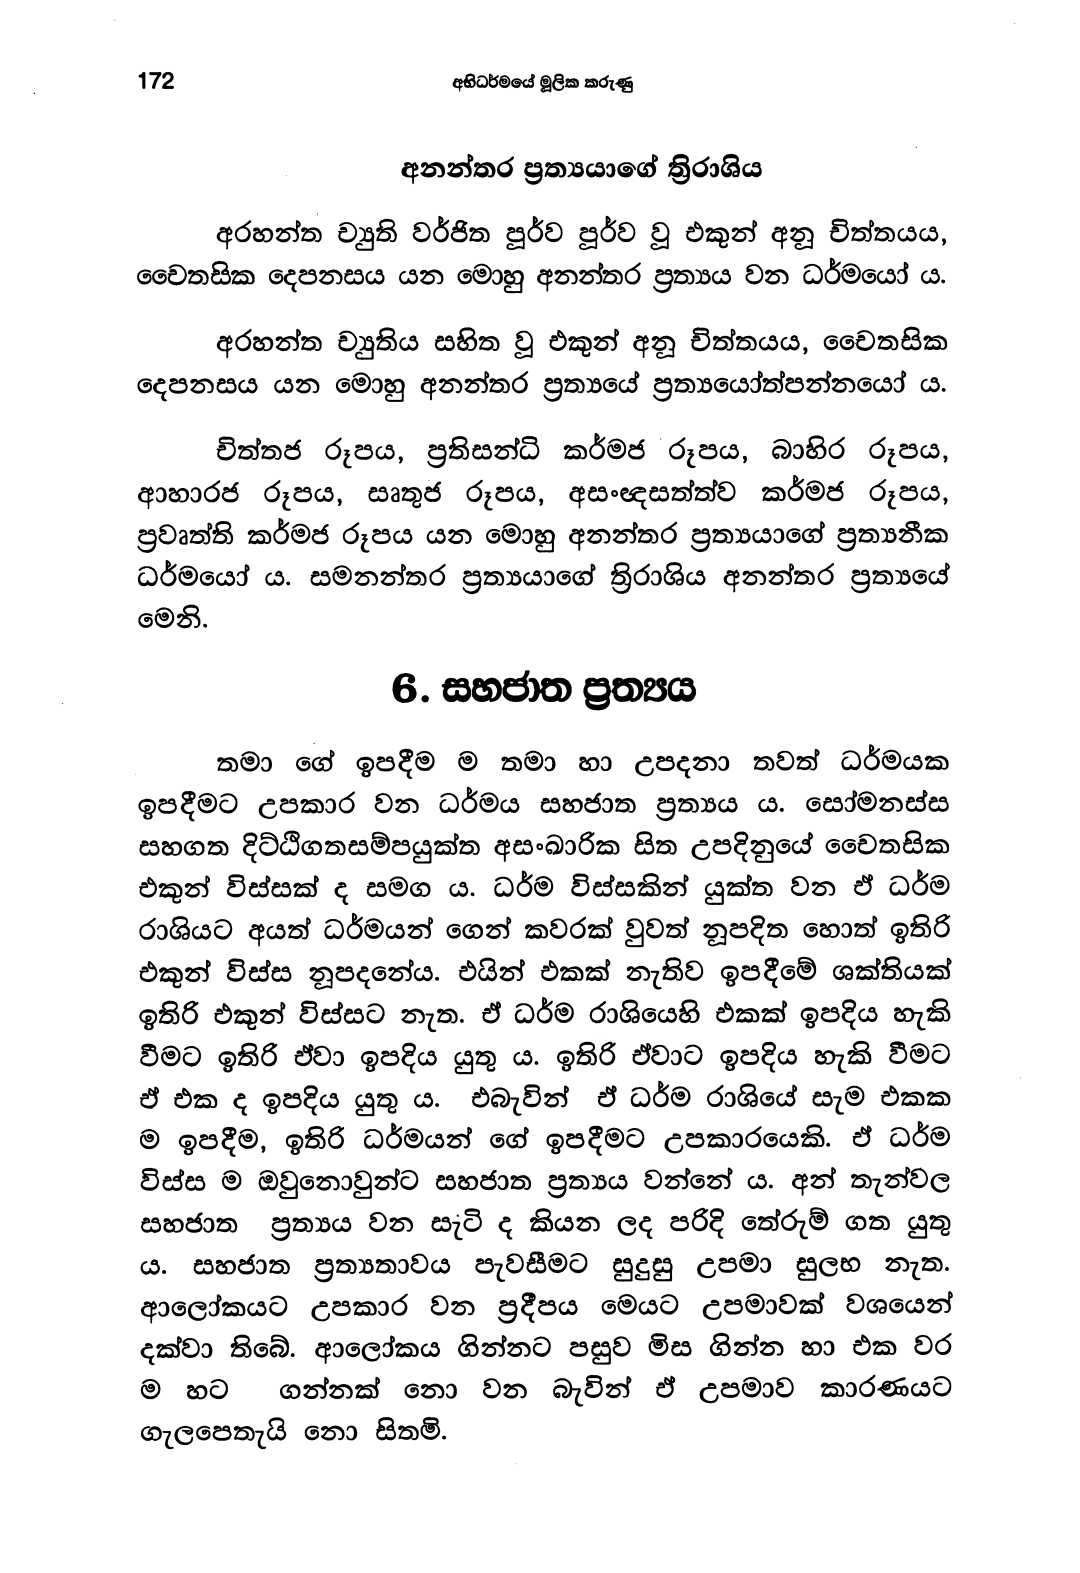 abhidharmaye-mulika-karunu-rerukane-chandavimala-nahimi-full-book-with-comments-highlights-and-book-marks_page_170